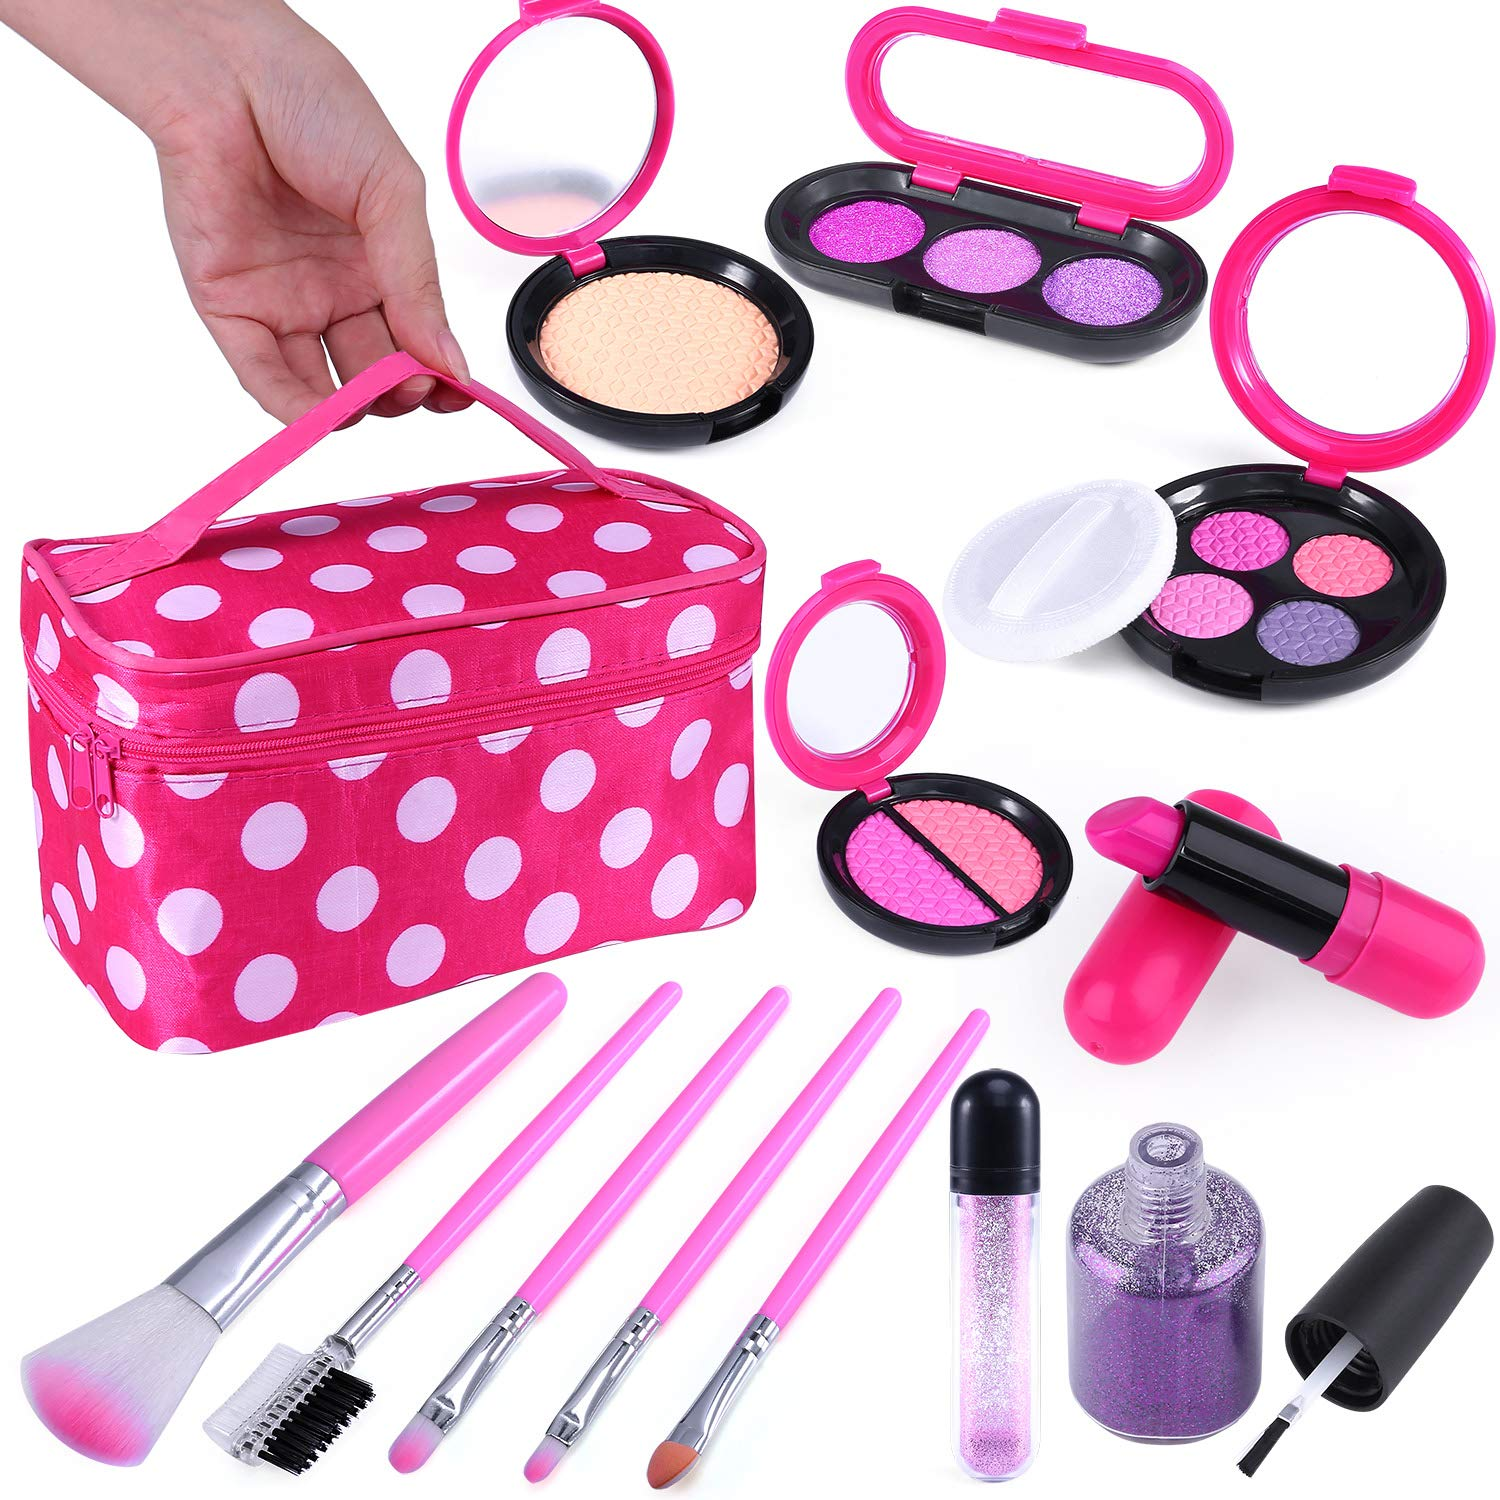 TEPSMIGO Pretend Makeup Kit with Cosmetic Bag for Girls 4-10 Year Old - Including Pink Brushes, Eye Shadows, Lipstick, Nail Polish, Mirrors, Glitter Pot, Puff Pad and More